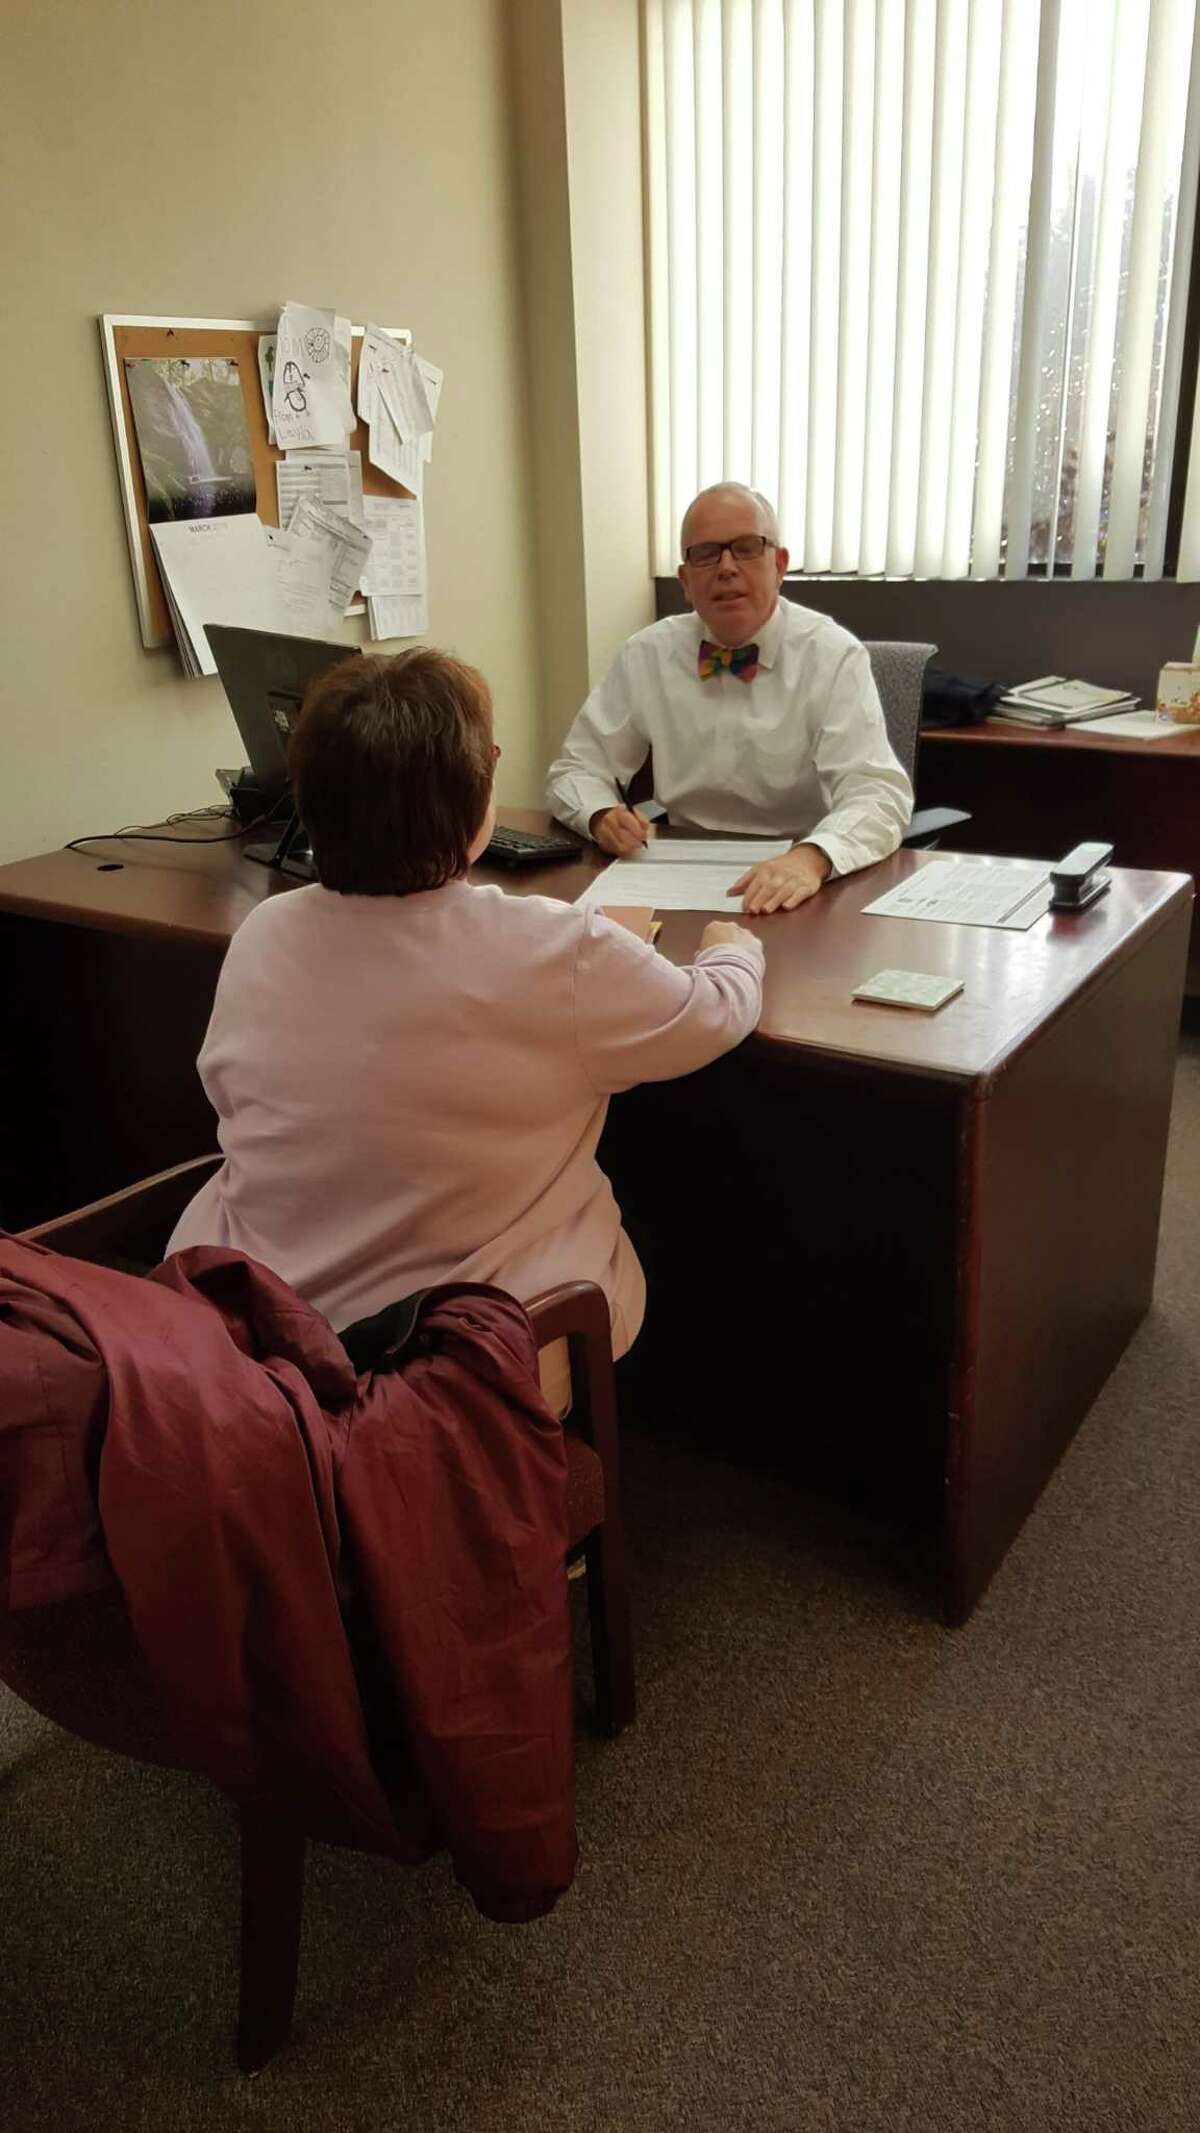 The United Way of Northwest Connecticut's free VITA tax filing program has extended its deadline to April 11, 2019. Above, a resident is counseled through a tax filing session with volunteer Jeff Geddes of Torrington Savings Bank.